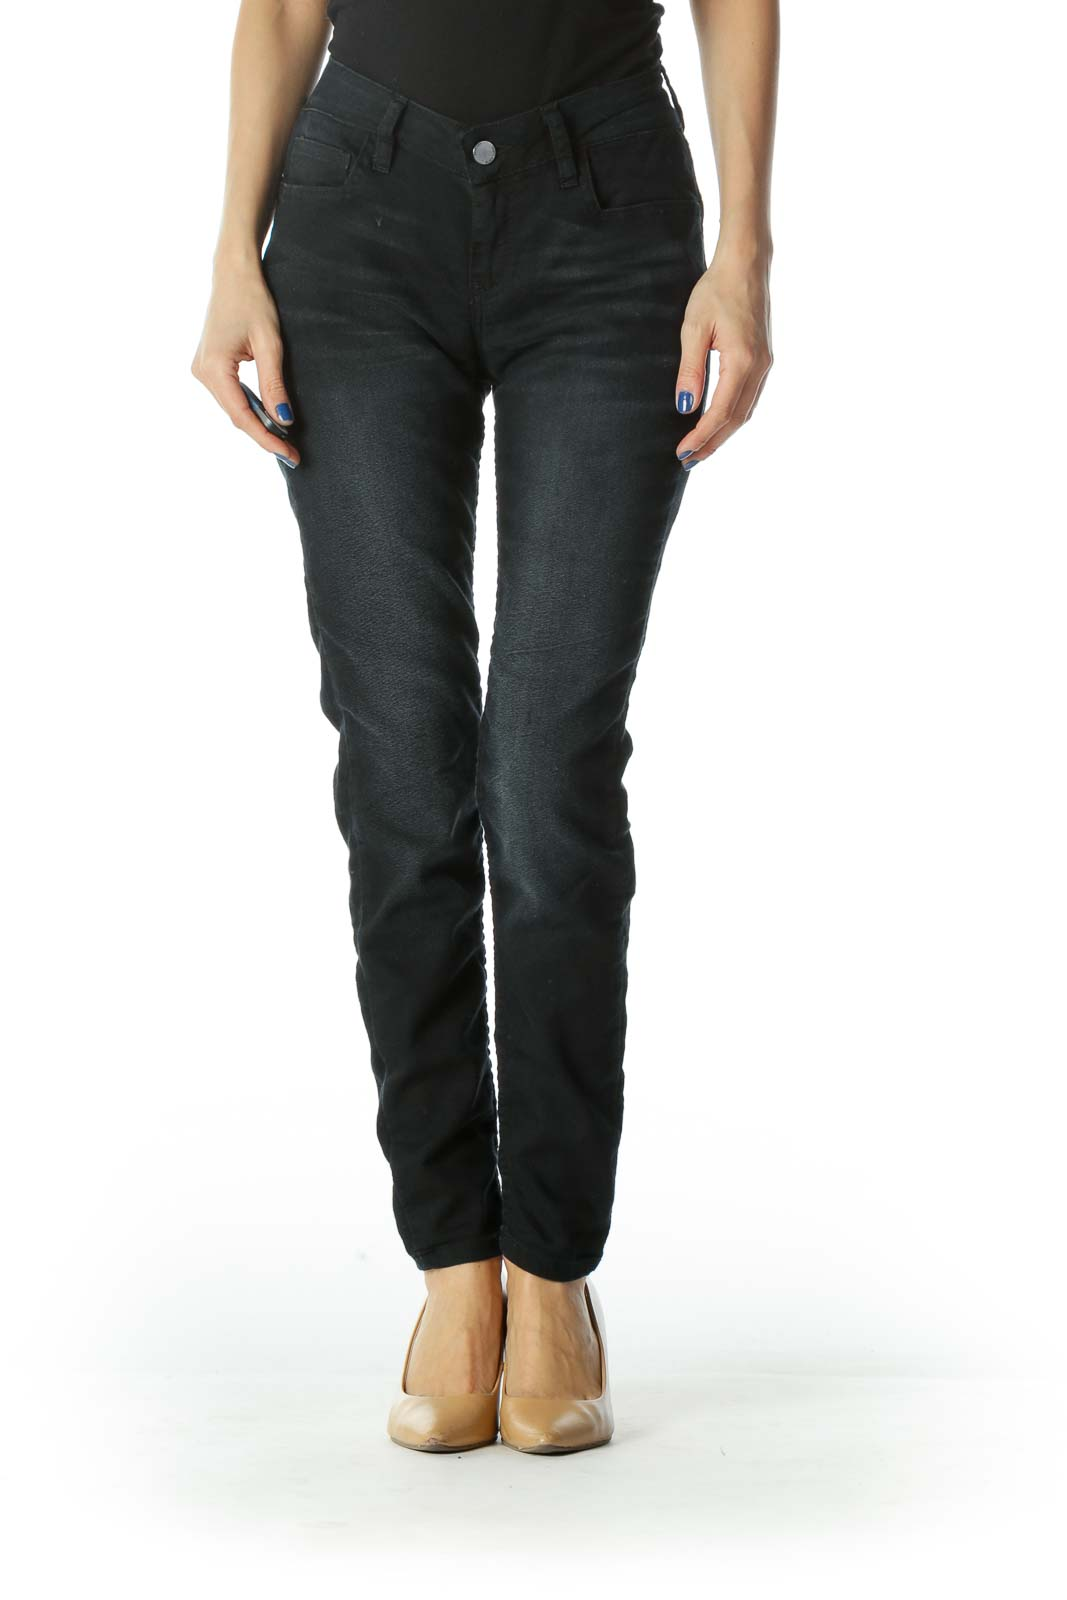 Black Faded Skinny Denim Jean   Front